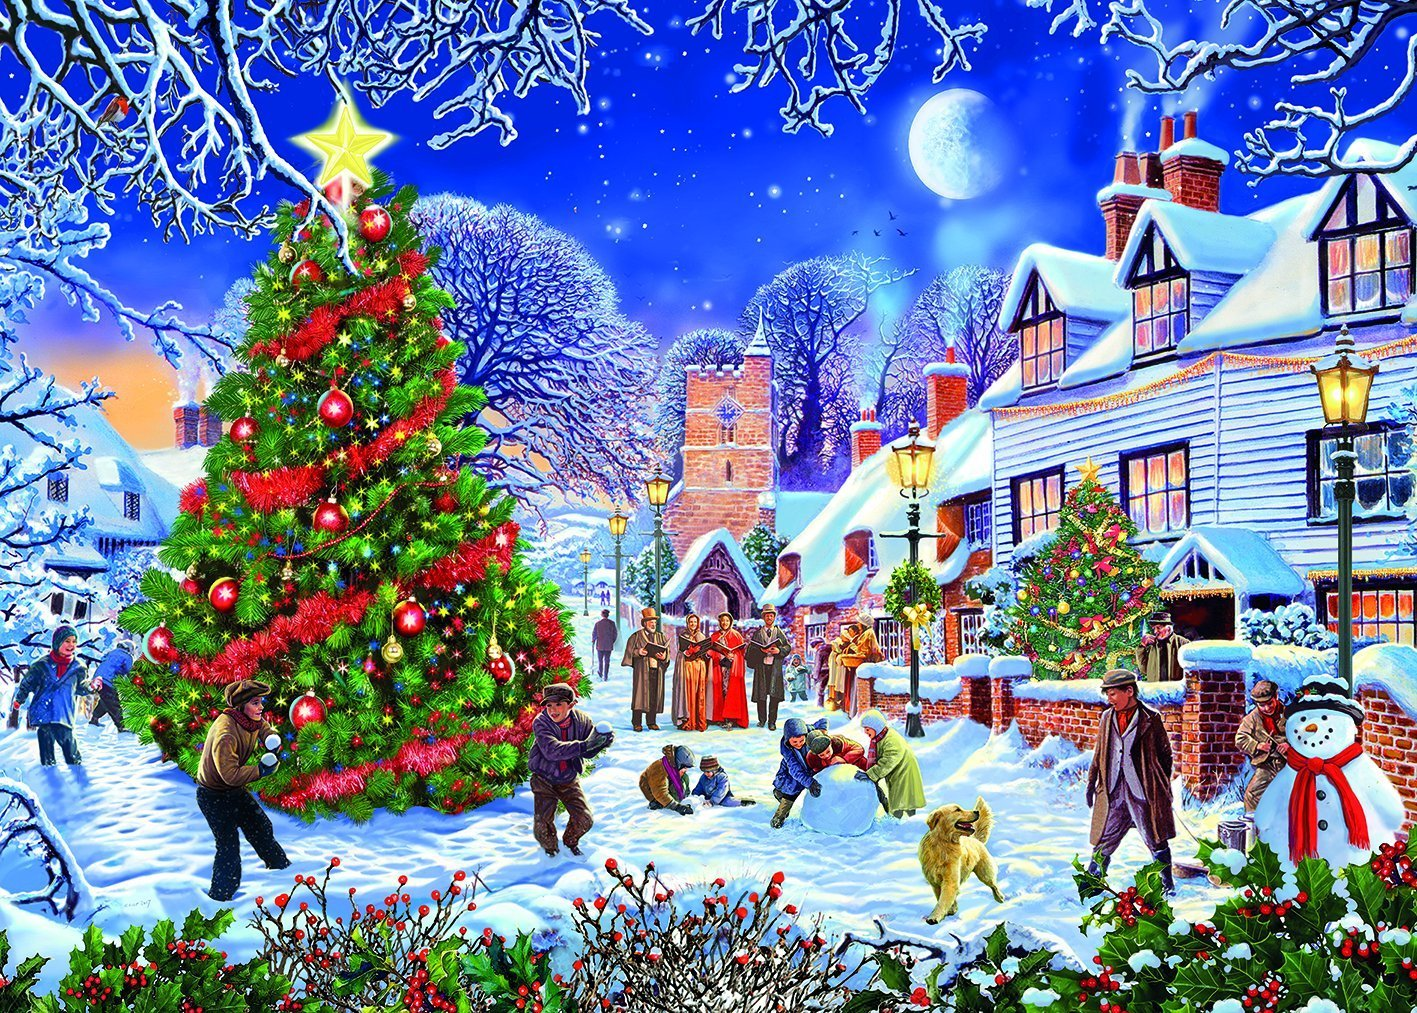 The Village Christmas Tree, 500 XL Puzzle